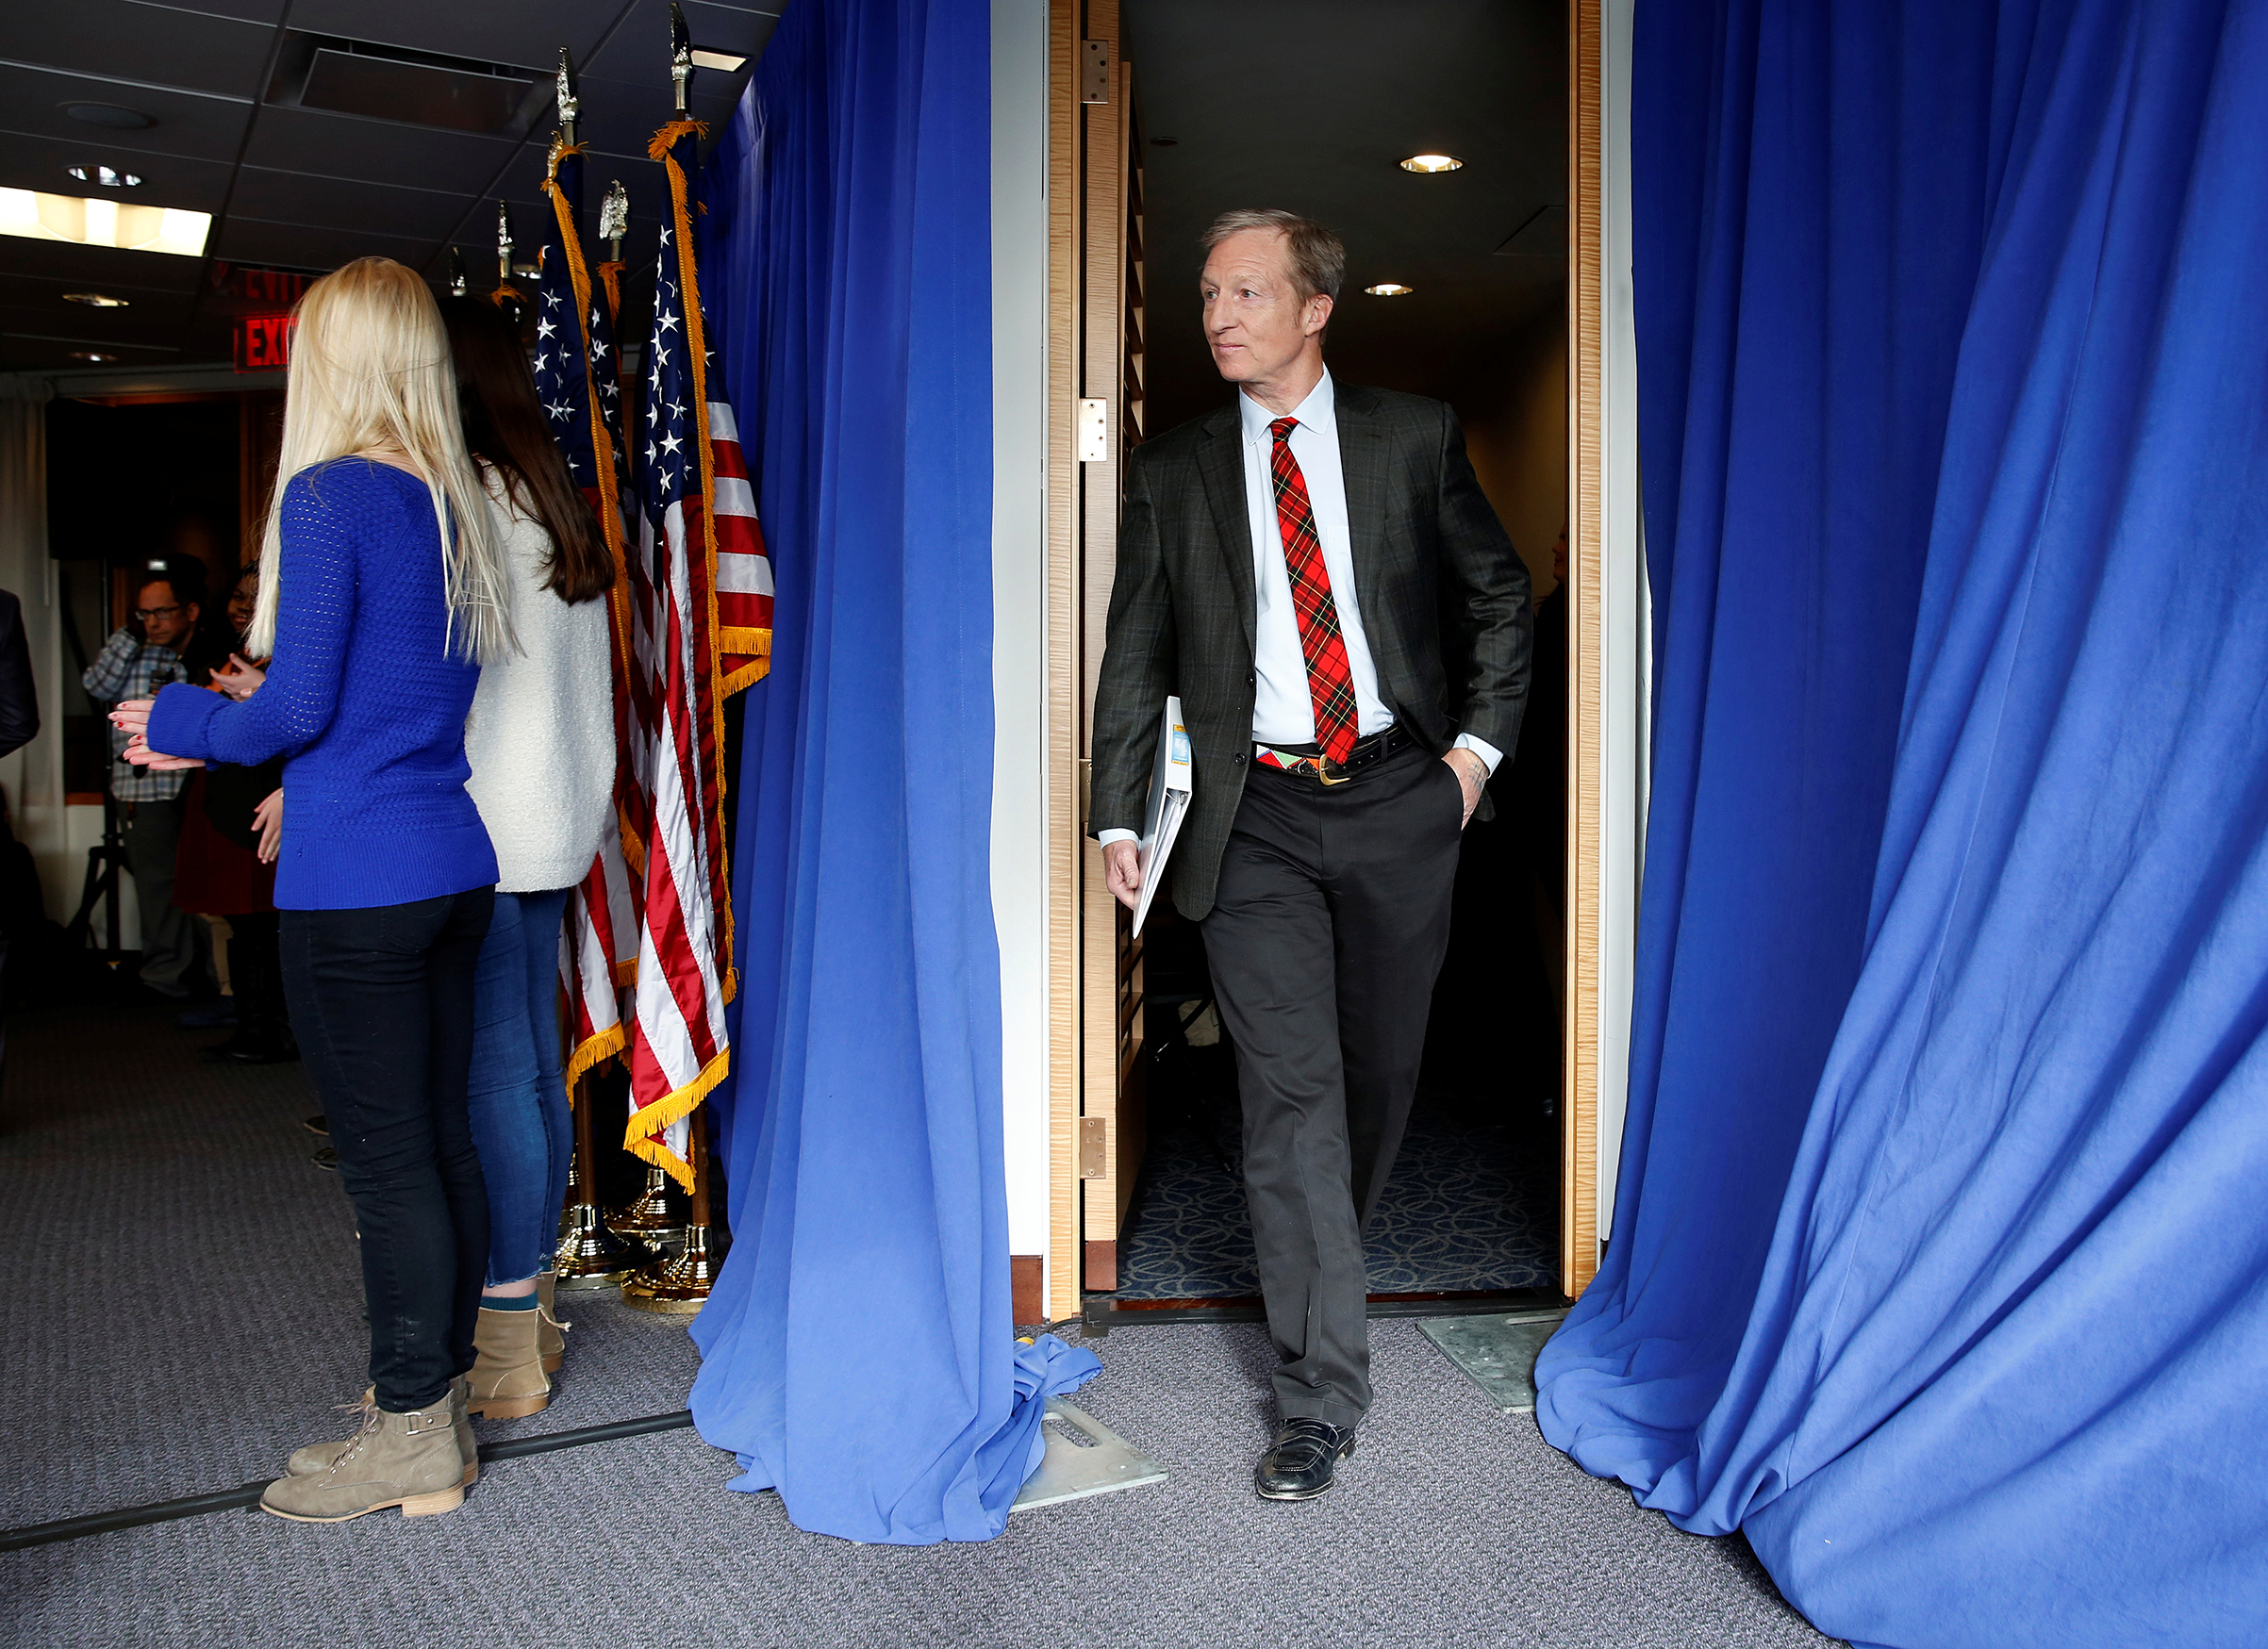 Tom Steyer, a hedge fund manager and a prominent Democratic fundraiser, has mounted a high-profile advertising campaign advocating the impeachment of U.S. President Donald Trump